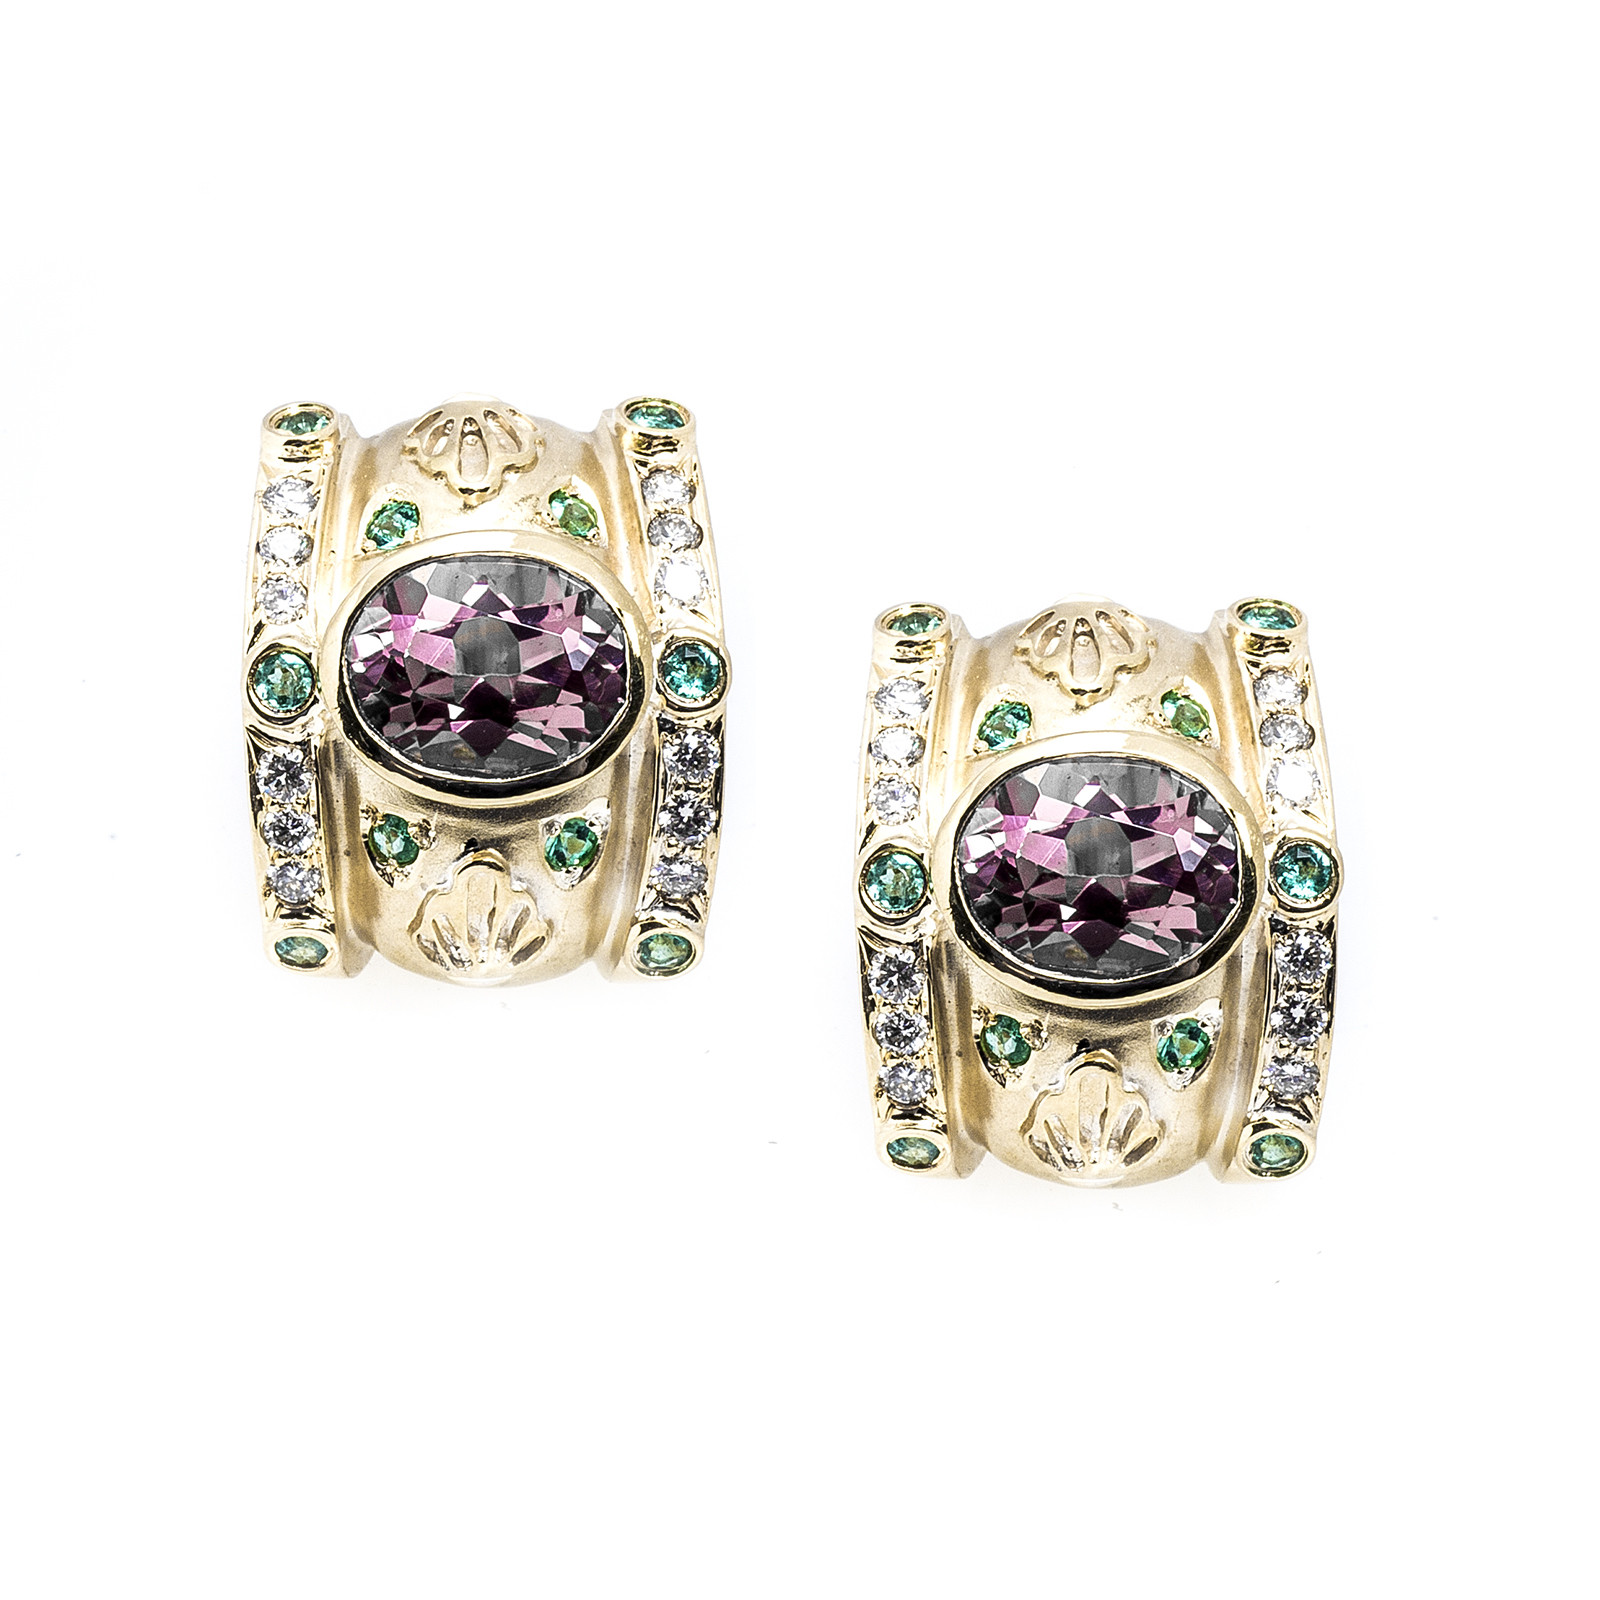 Vintage Judy Mayfield 4.80 CTW Diamond & Tourmaline Earrings